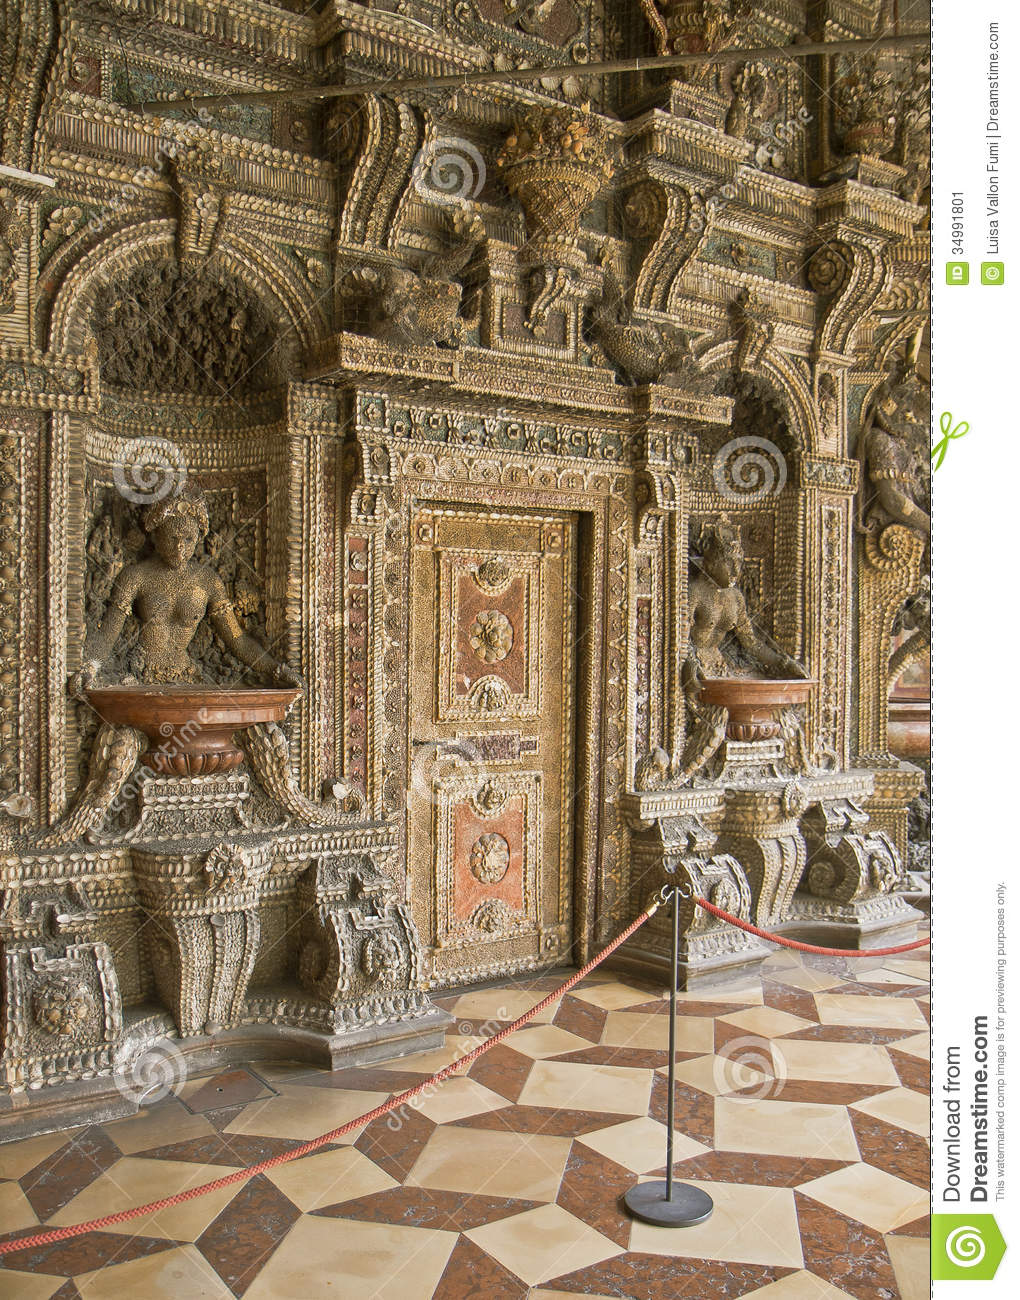 Grotto court, courtyard in Munich Residenz, palace in city center once ...